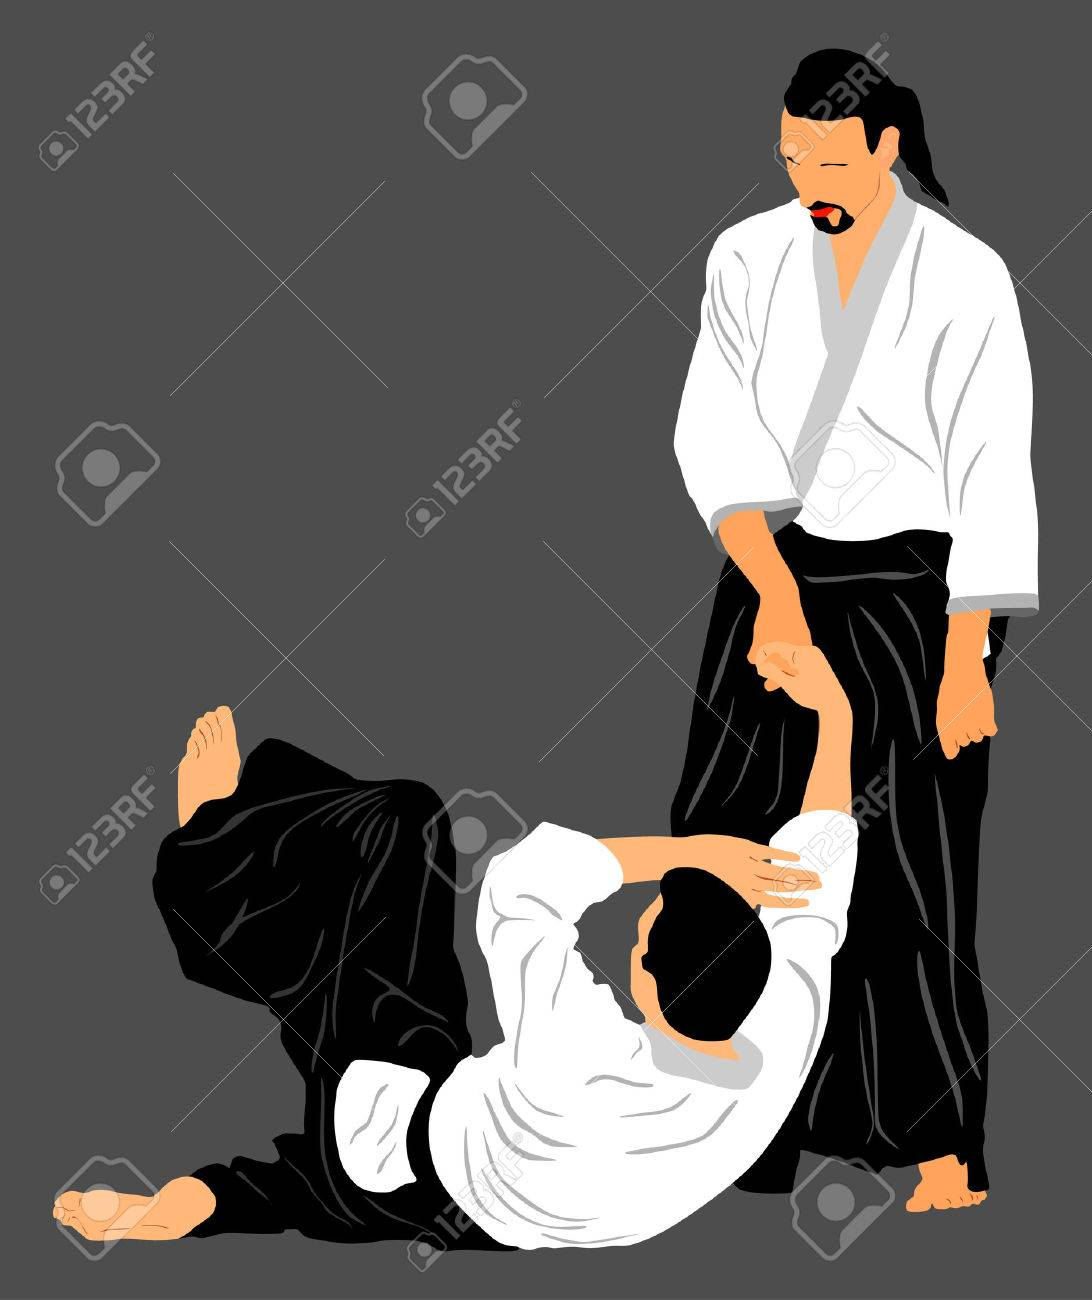 Fight between two aikido fighters vector silhouette symbol illustration. Sparring on training action. Self defense, defence art excercising concept. - 60856188